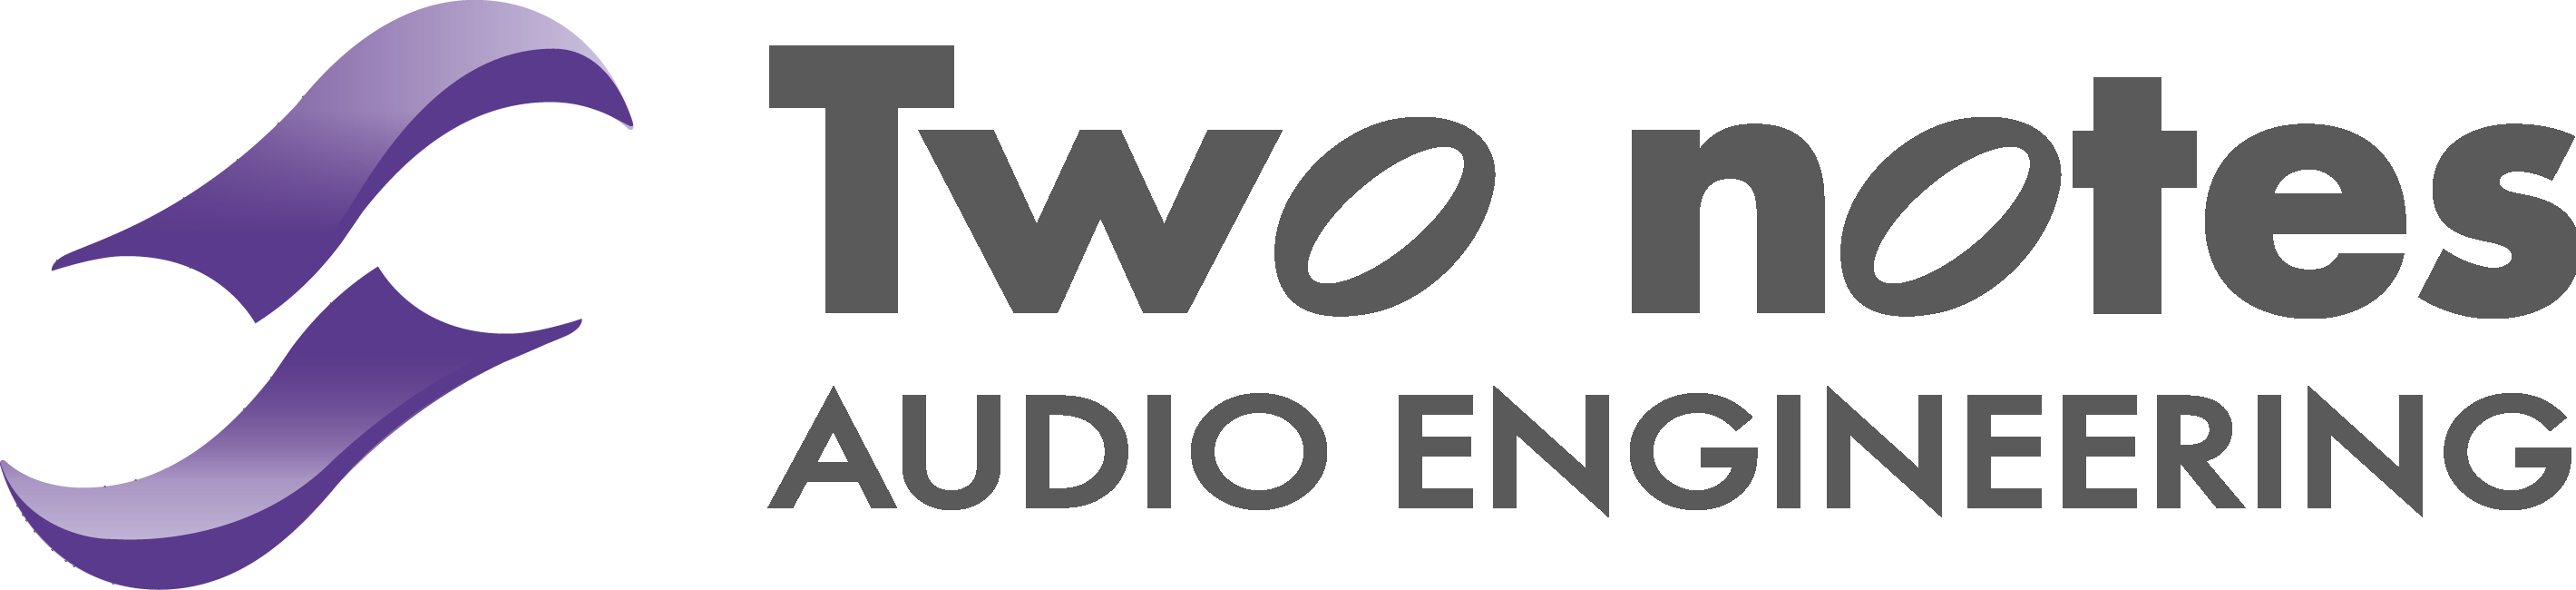 Two Notes Audio